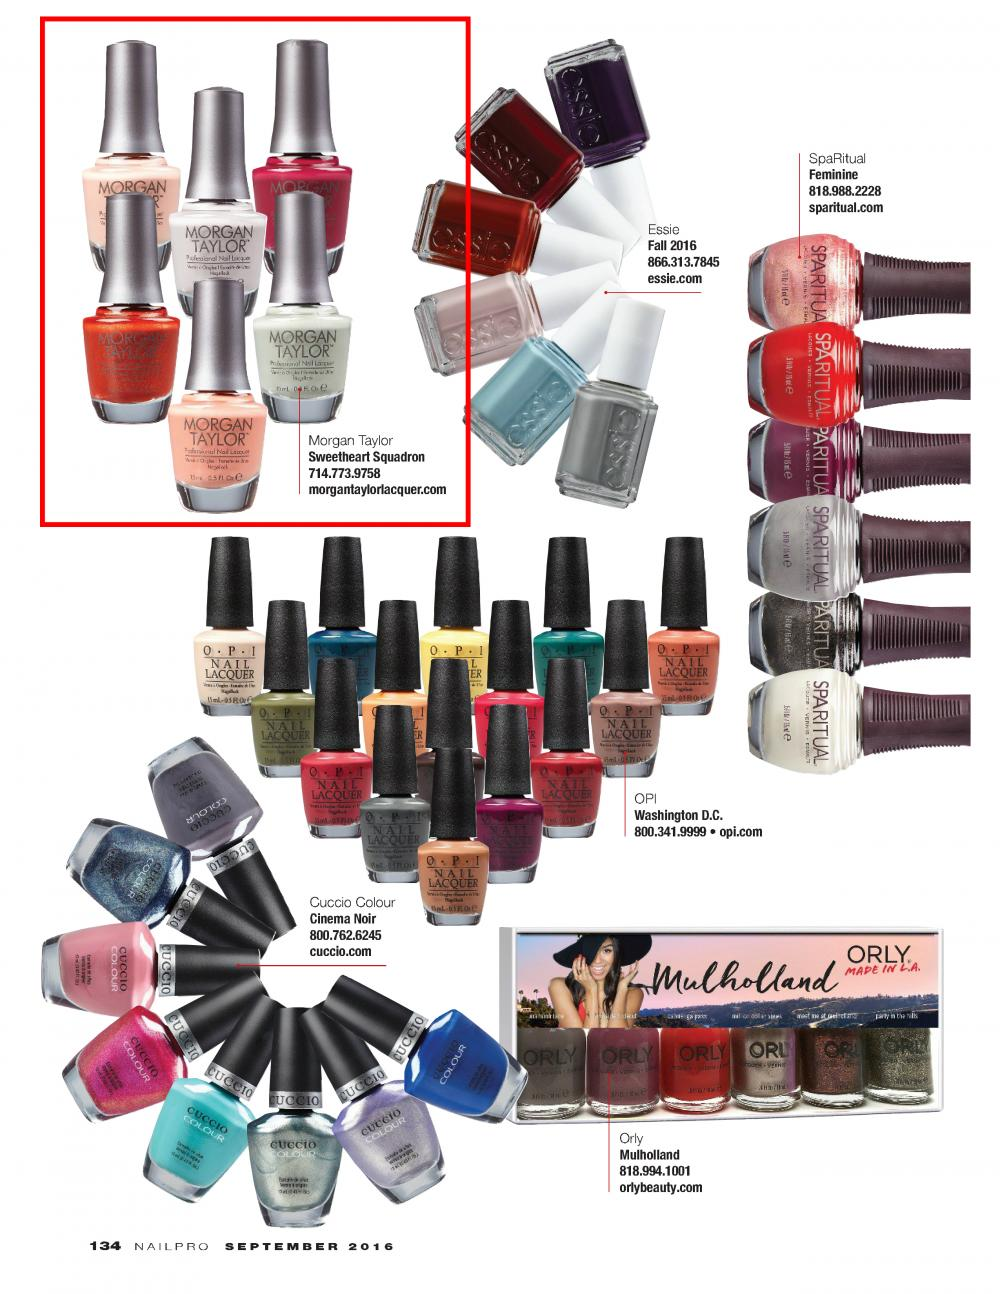 NAILPRO MAGAZINE - September, 2016